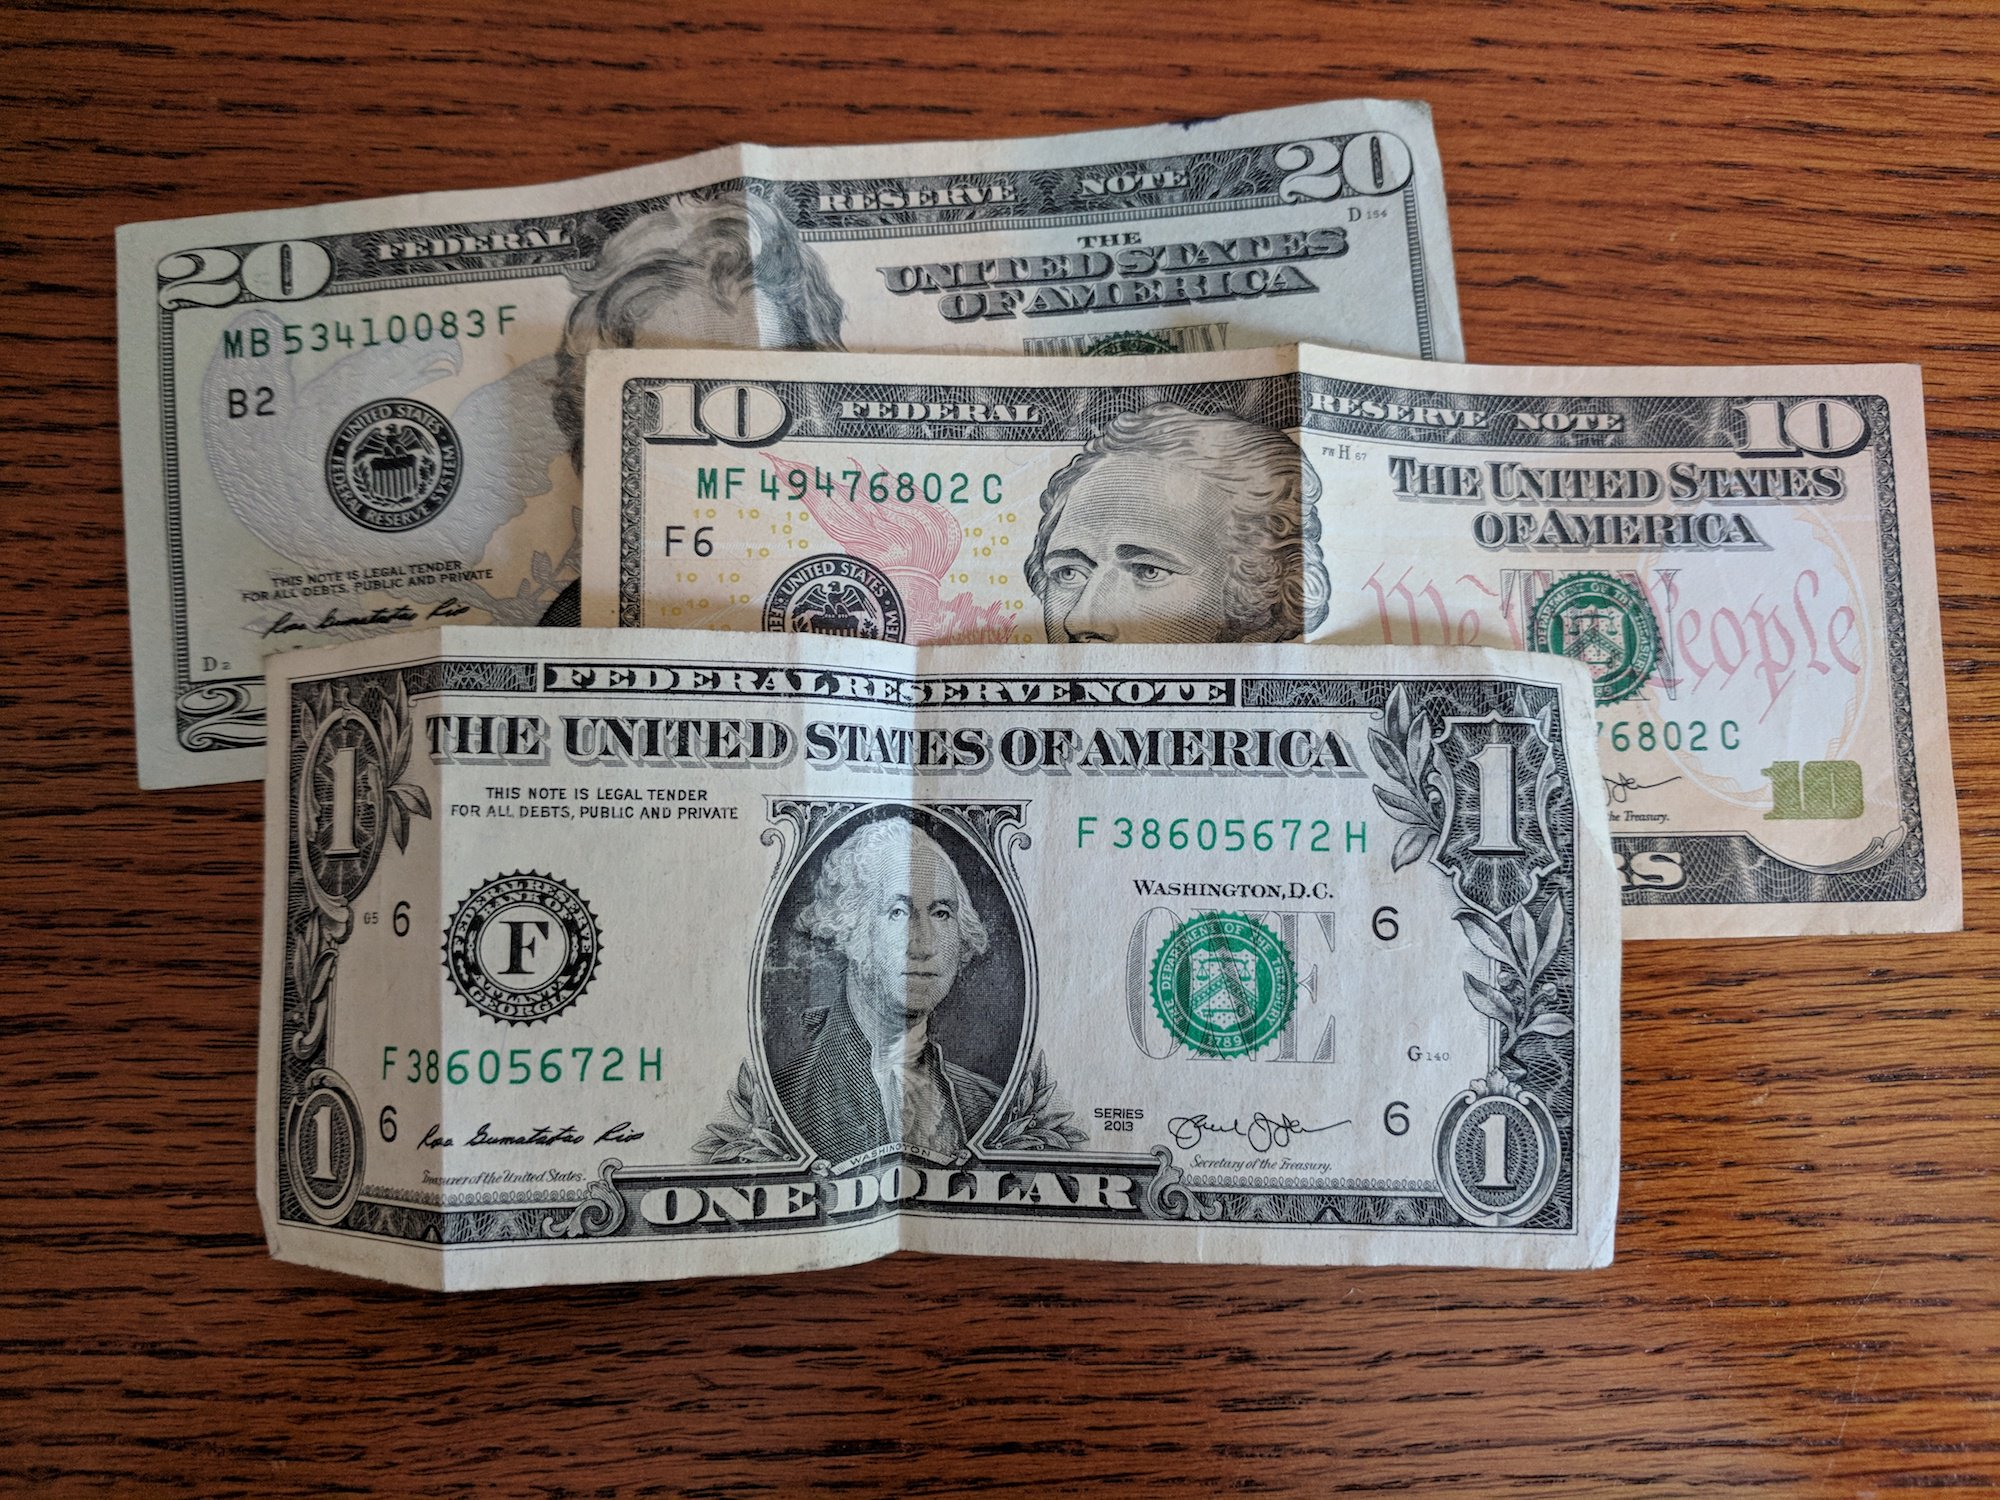 A 20, 10, and 1 dollar bill